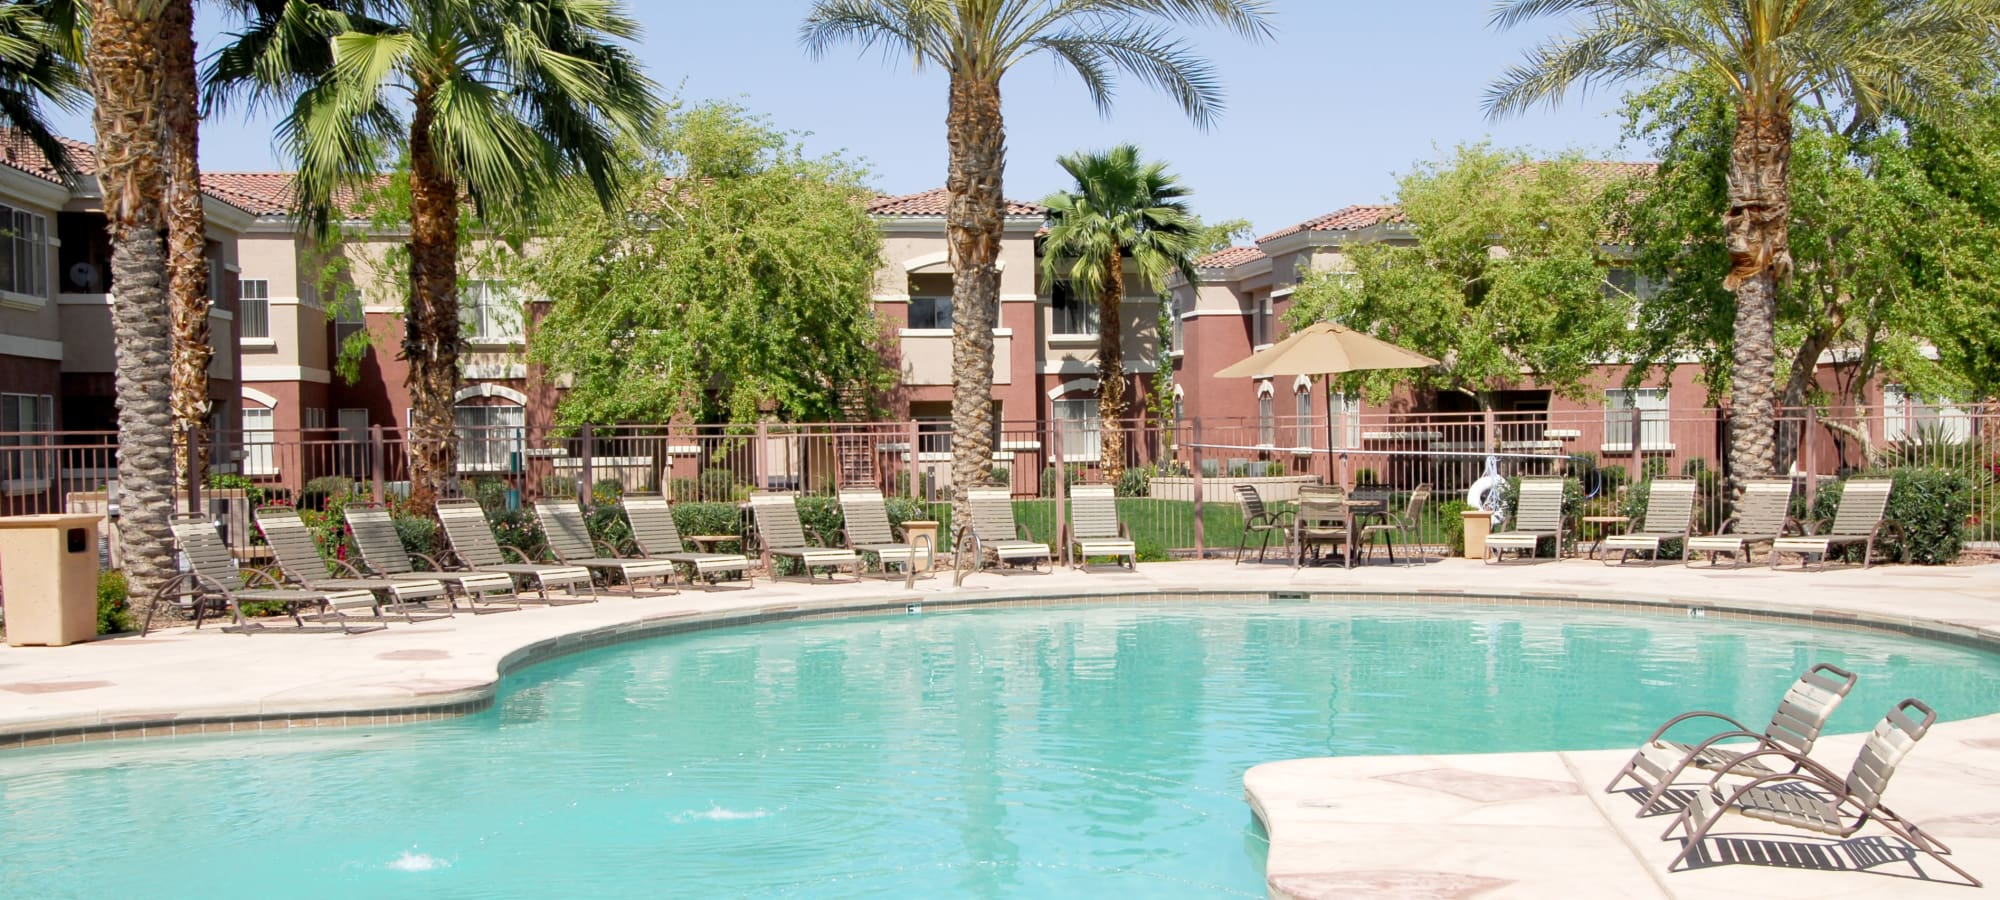 Swimming pool with lounge chairs at Remington Ranch in Litchfield Park, Arizona